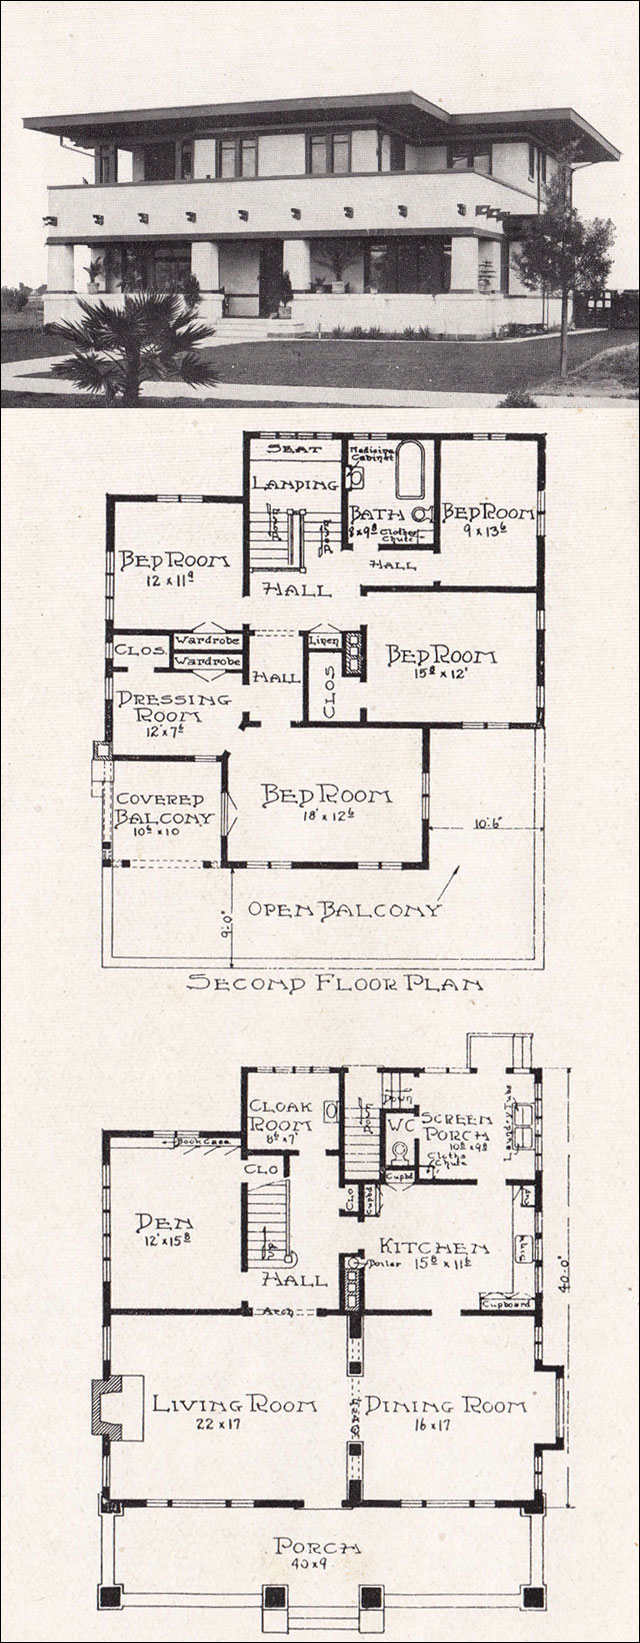 california prairie school 1918 house plan by e w stillwell